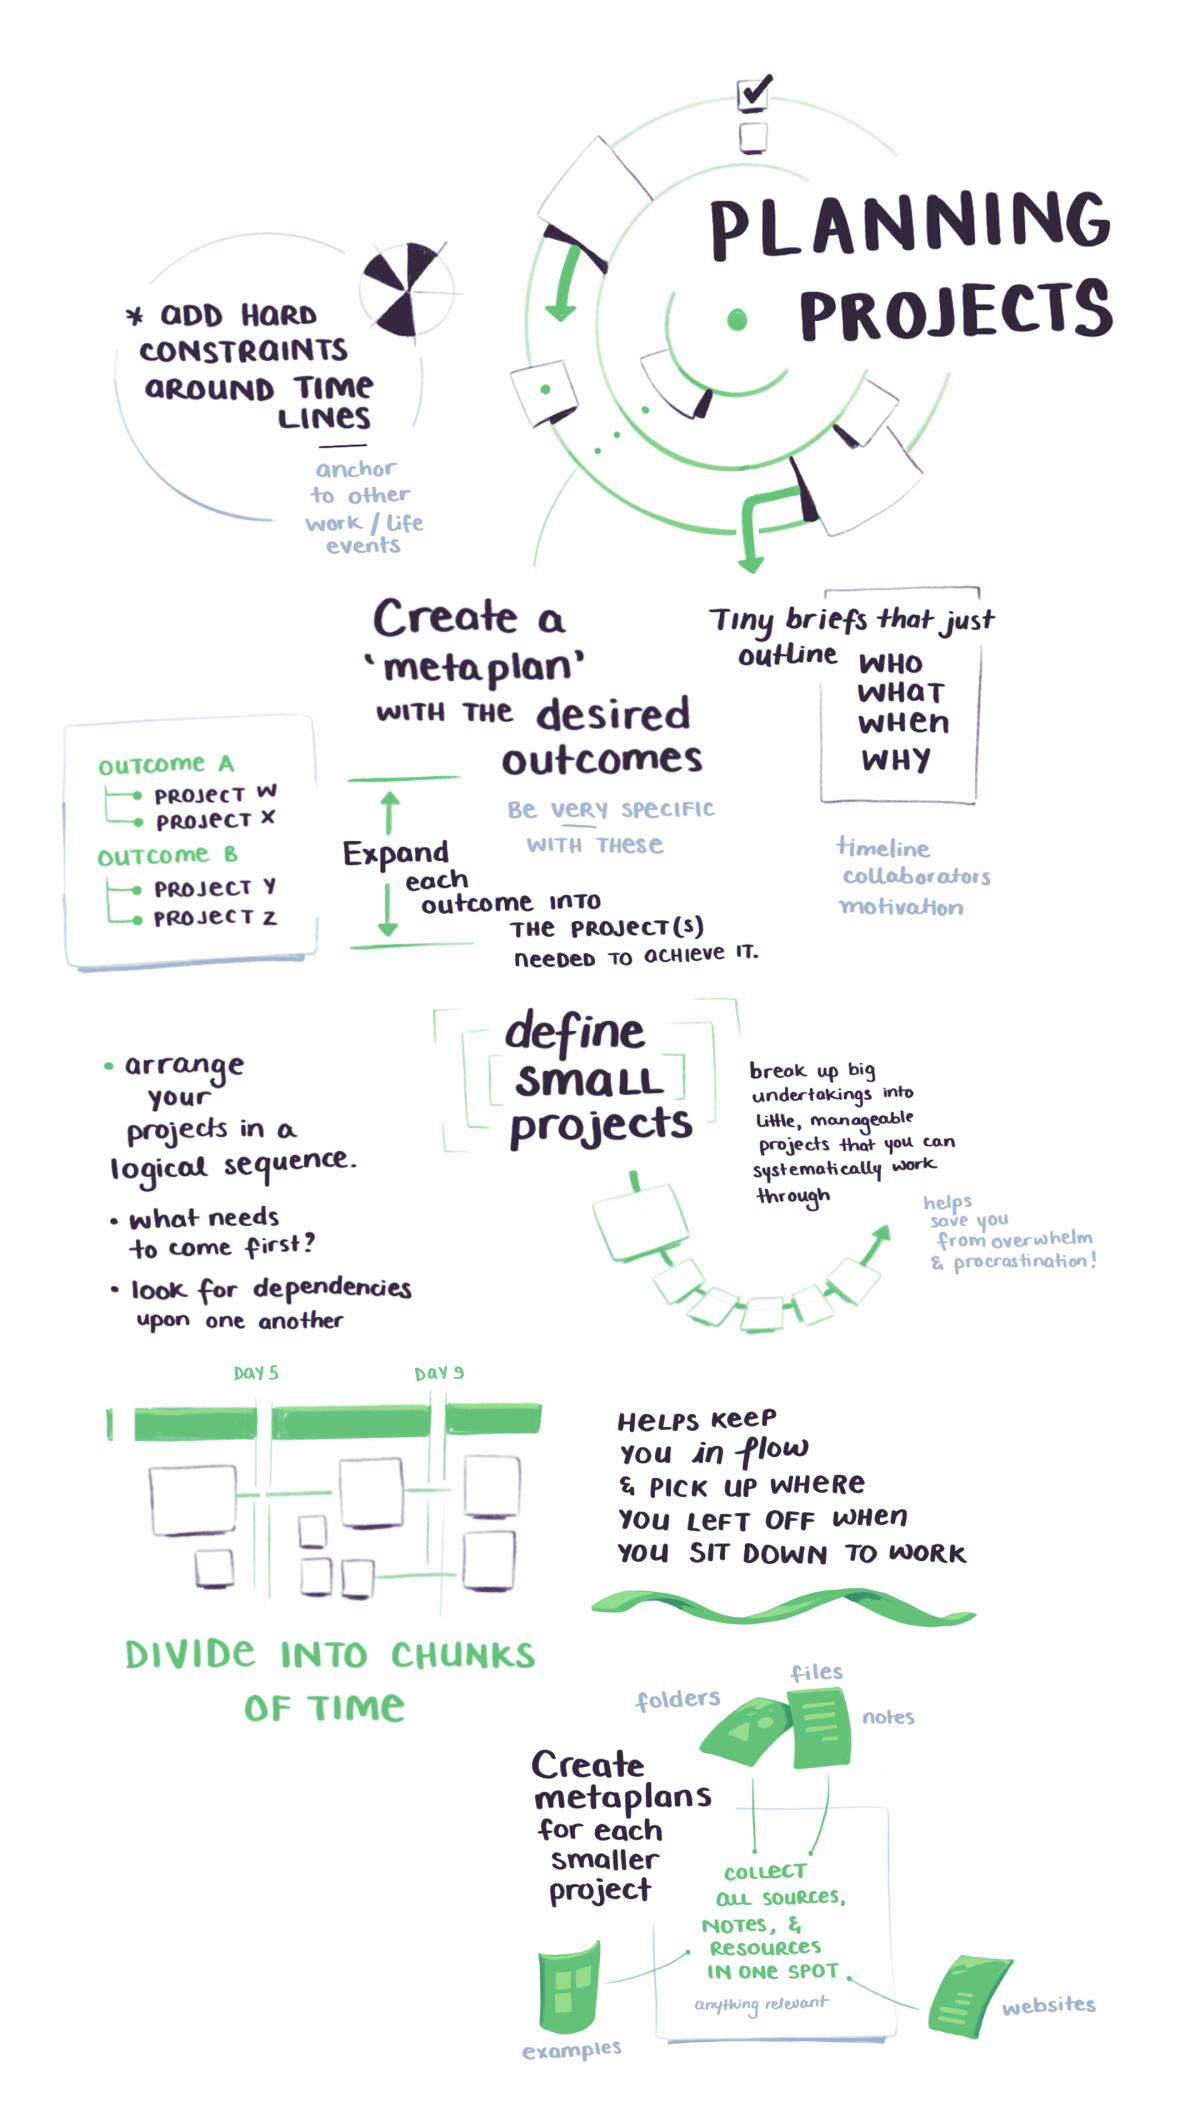 BASB sketchnotes on creating metaplans before you start your project